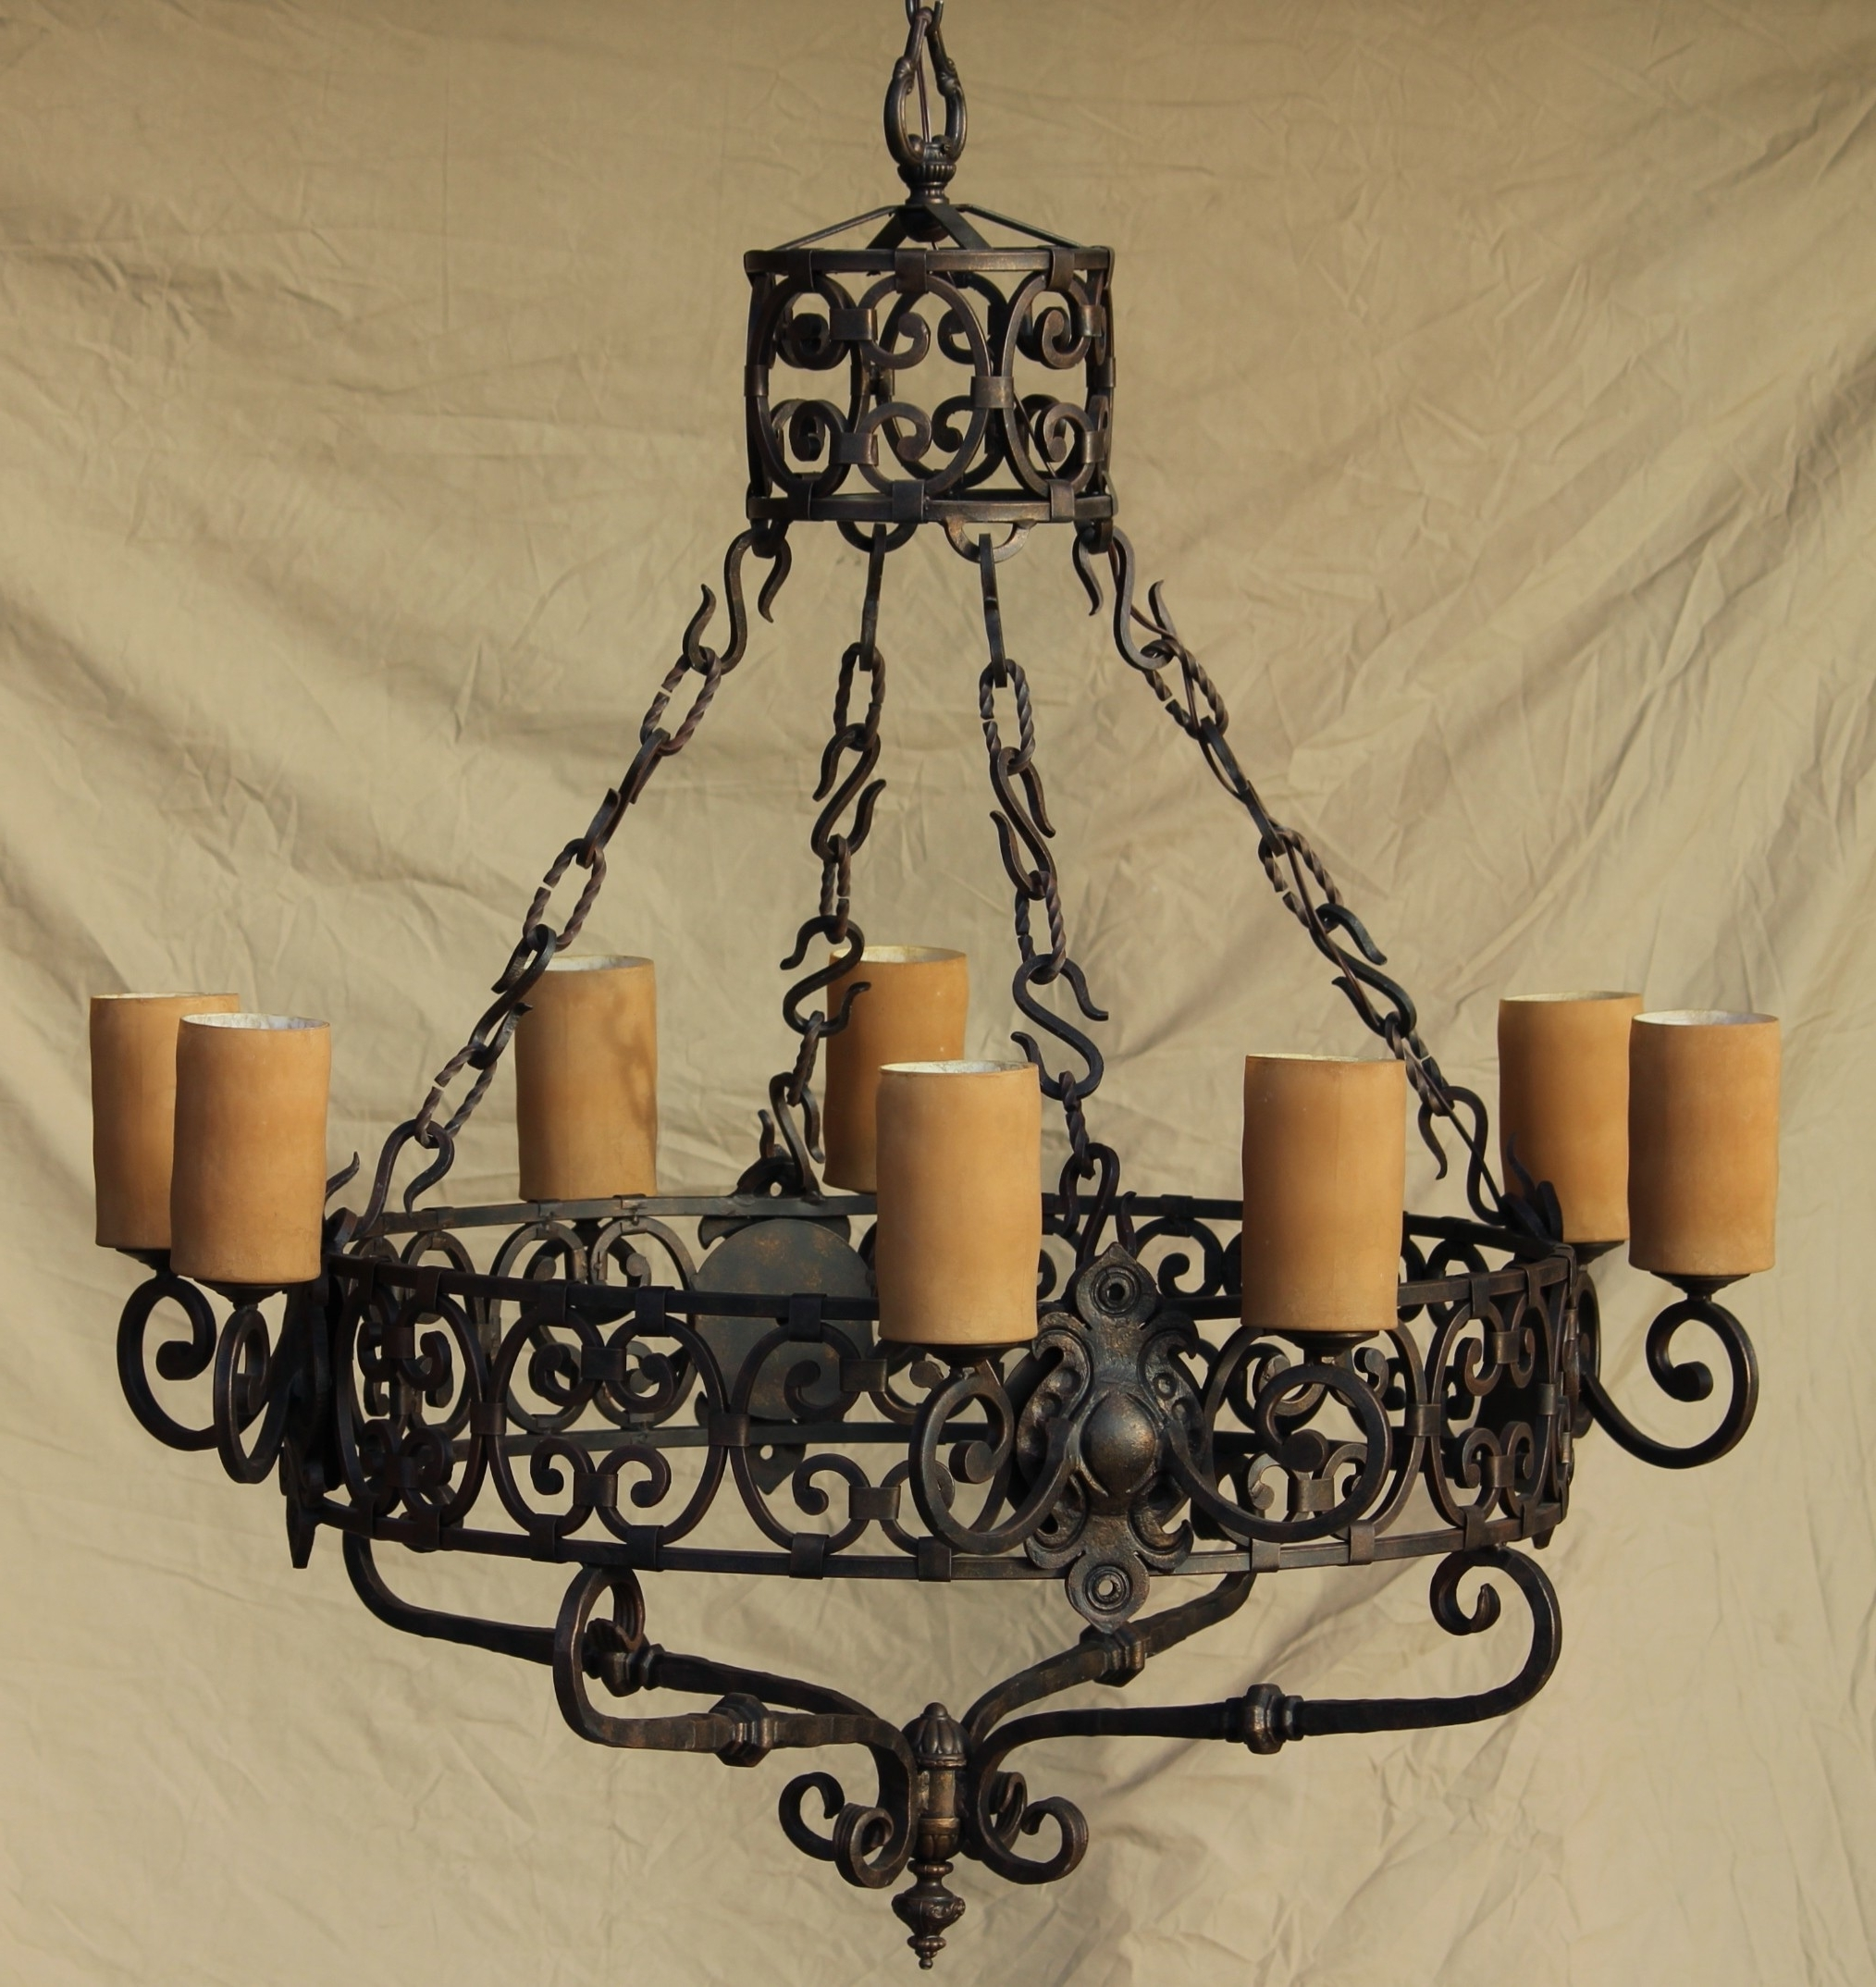 Trendy Lights Of Tuscany Chandeliers – Ceiling Fixtures – Fixtures For Wrought Iron Chandelier (View 15 of 15)